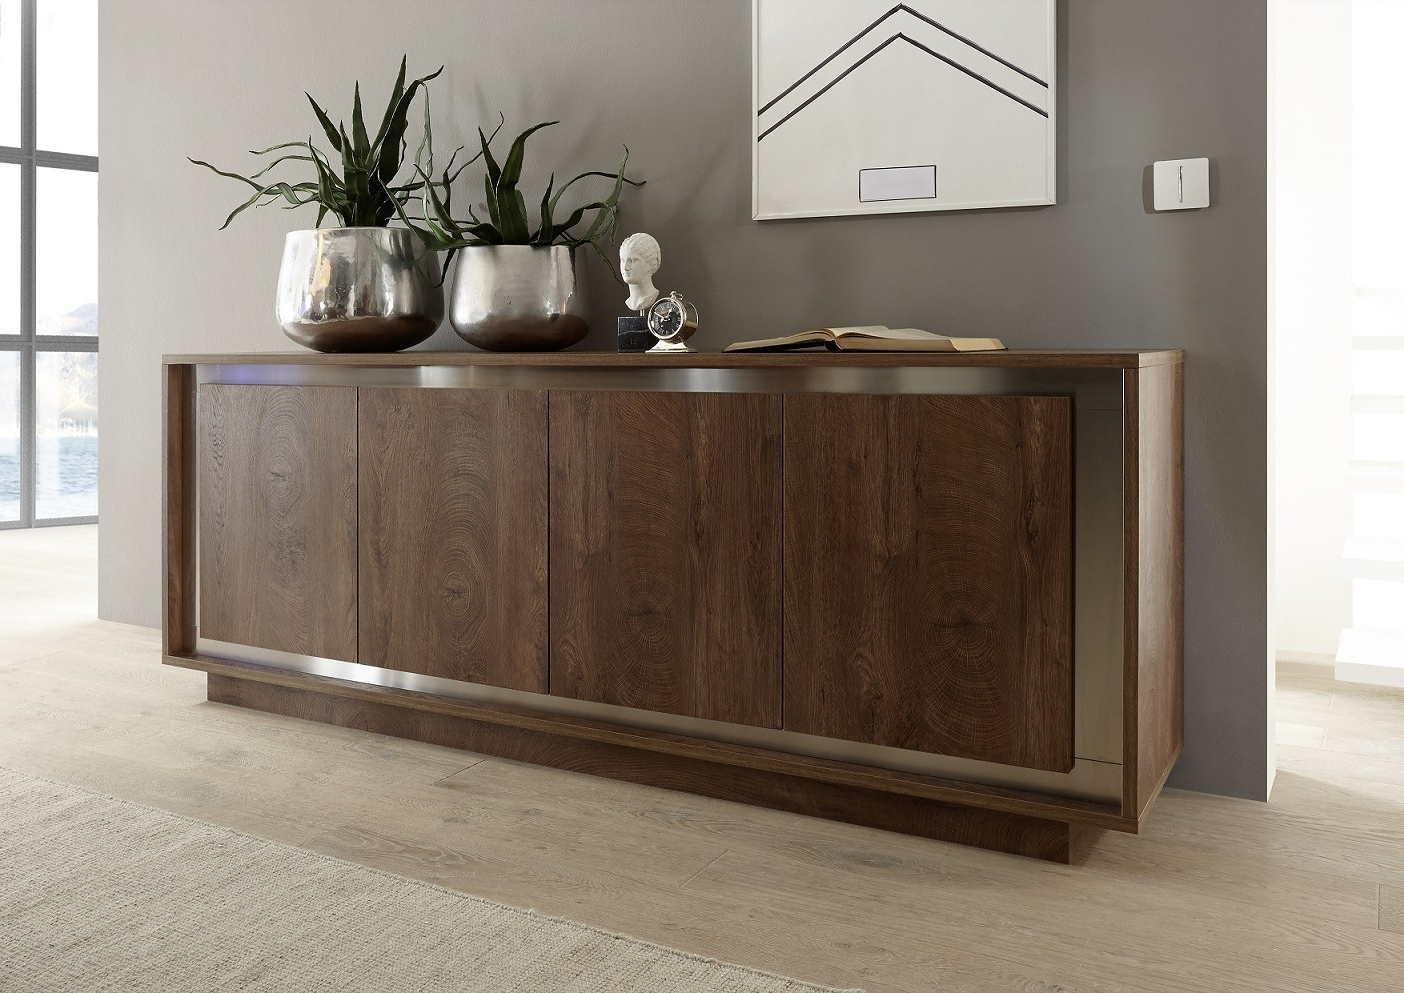 2019 Modern Sideboards Uk (82) – Sena Home Furniture Inside Walnut Finish Contempo Sideboards (View 2 of 20)